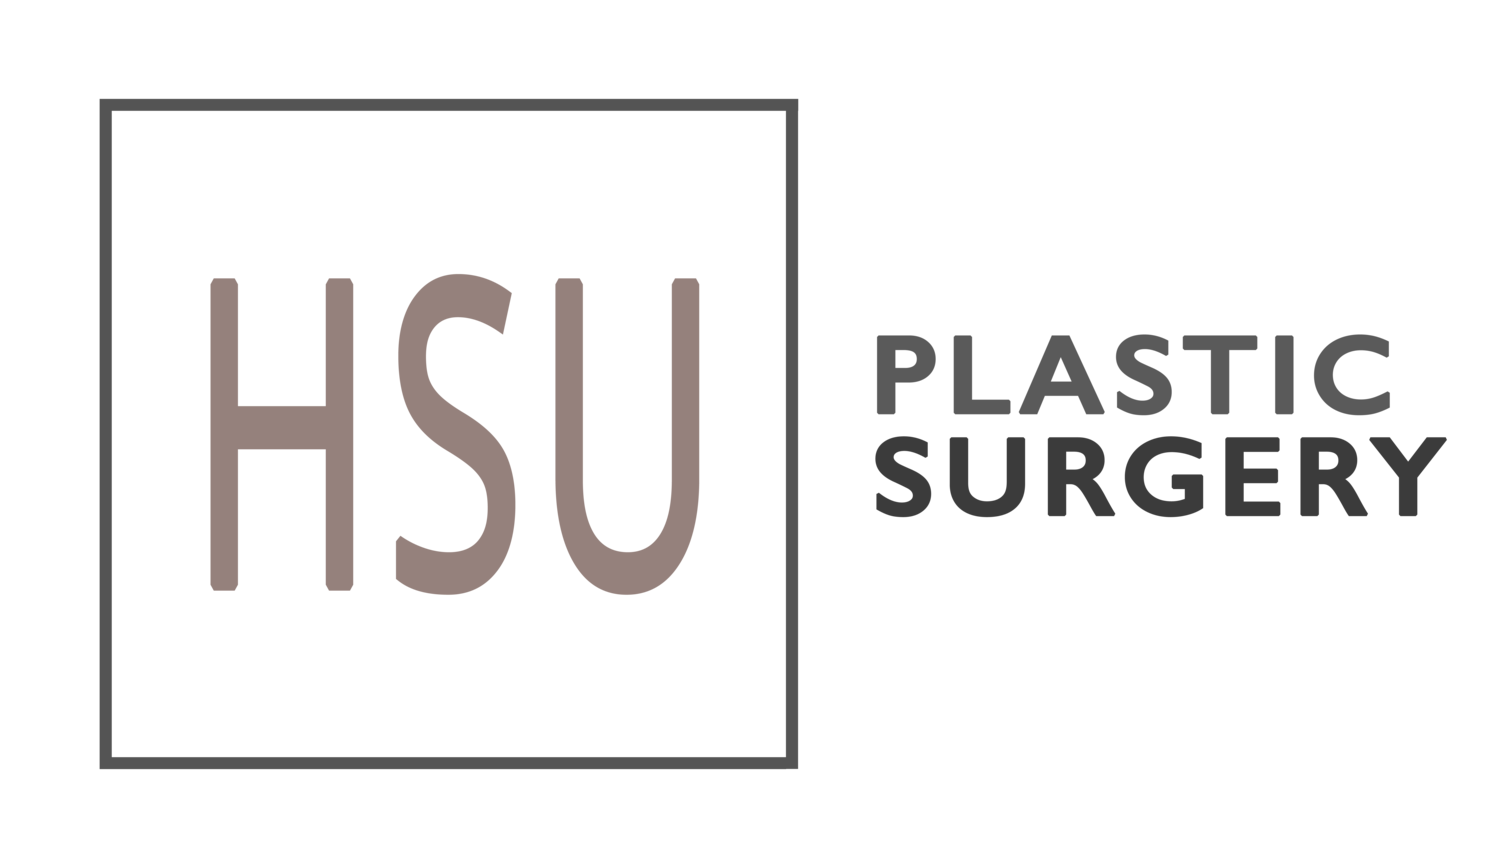 HSU PLASTIC SURGERY